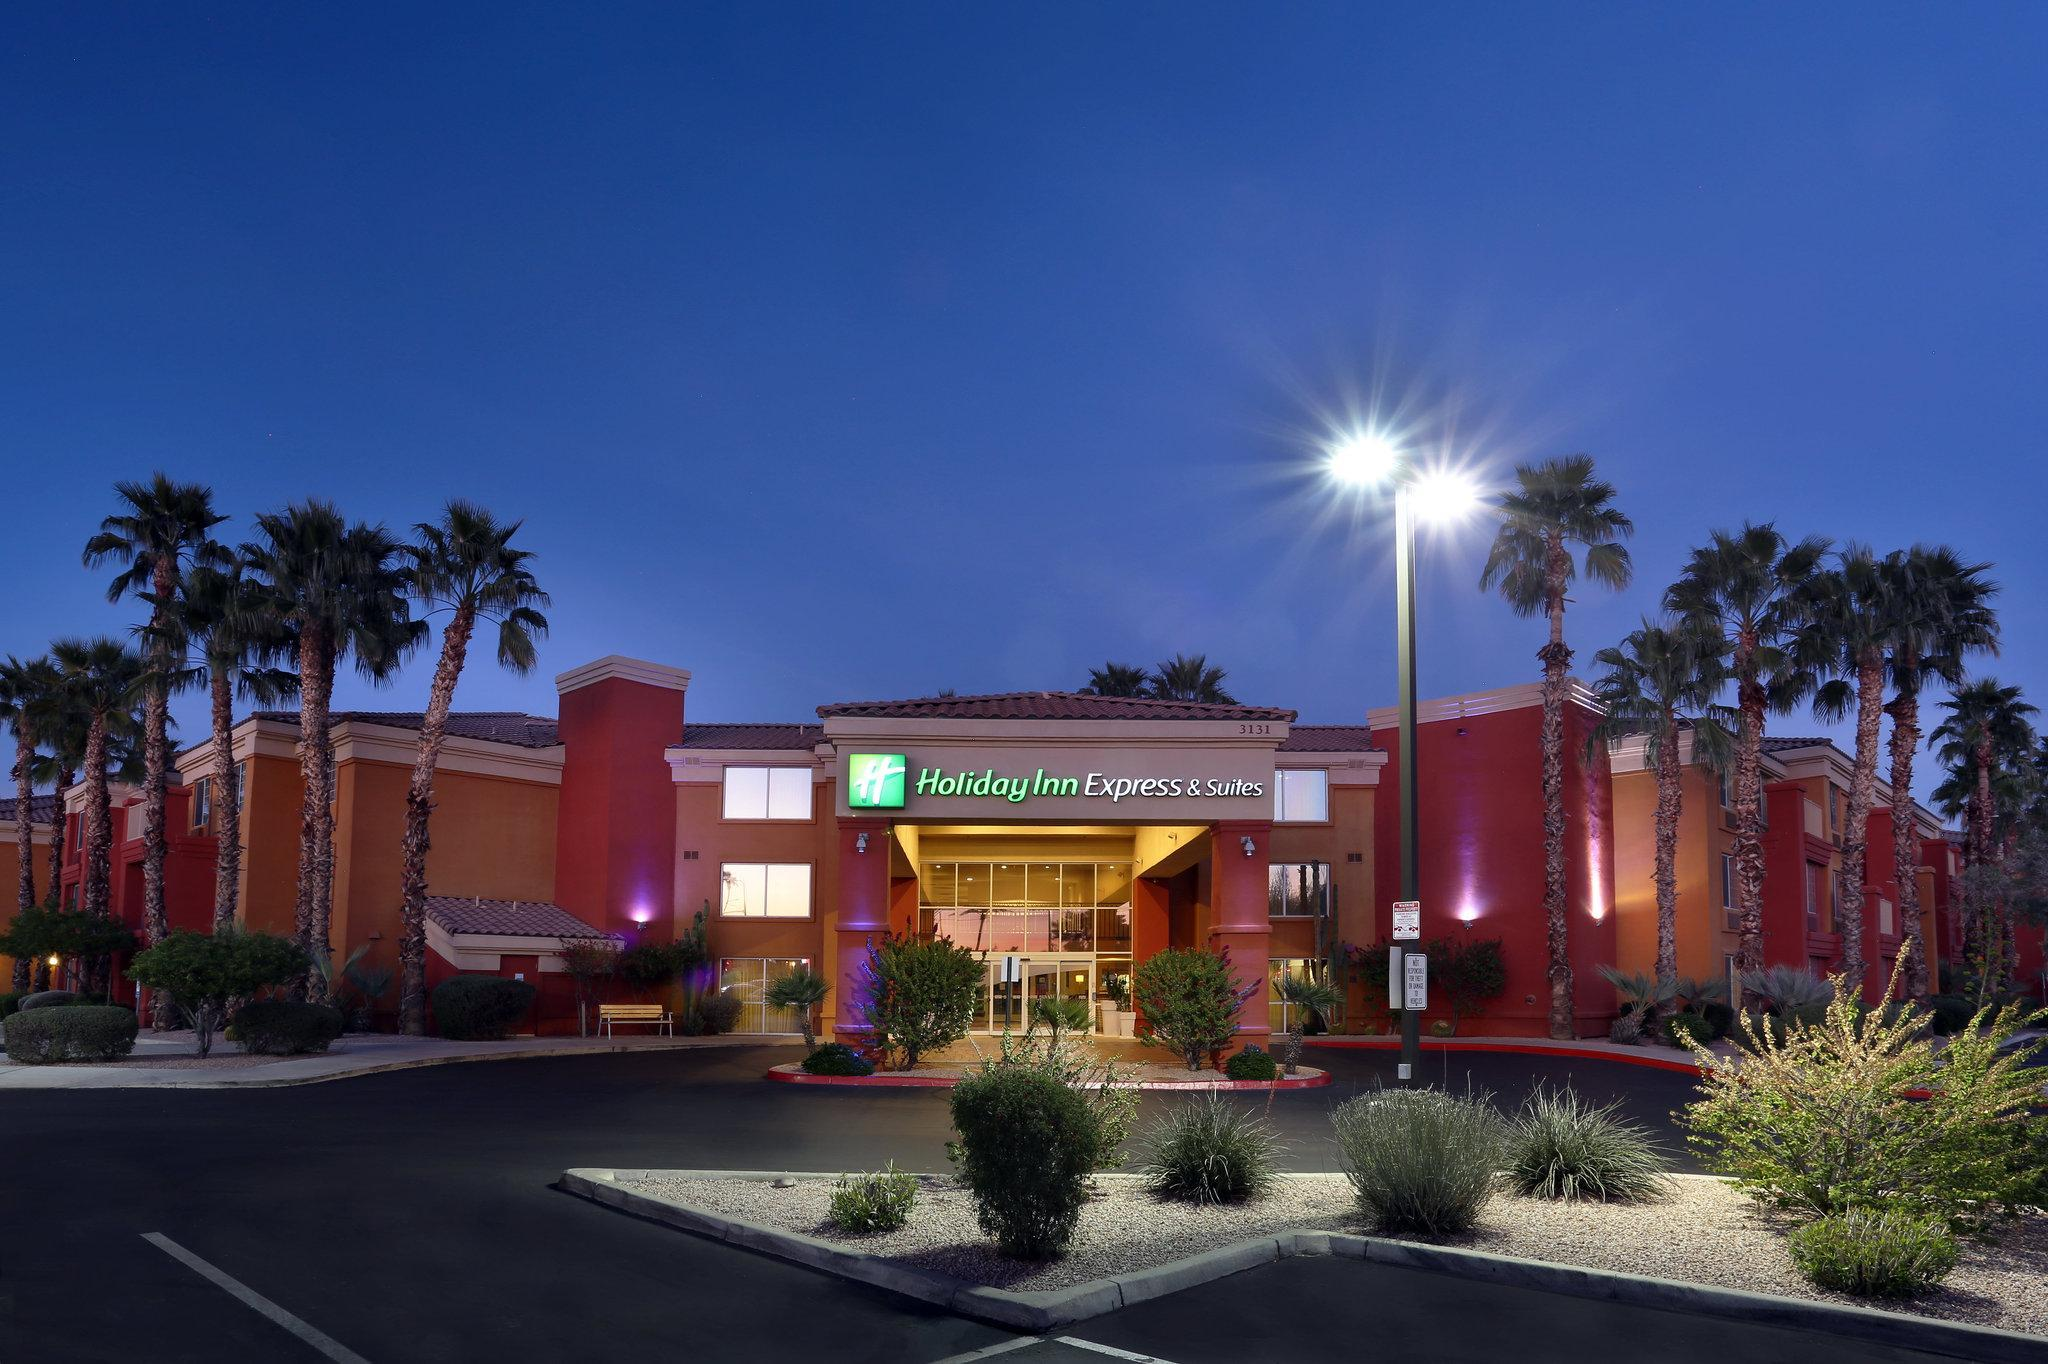 Holiday Inn Express Hotel & Suites Scottsdale - Old Town image